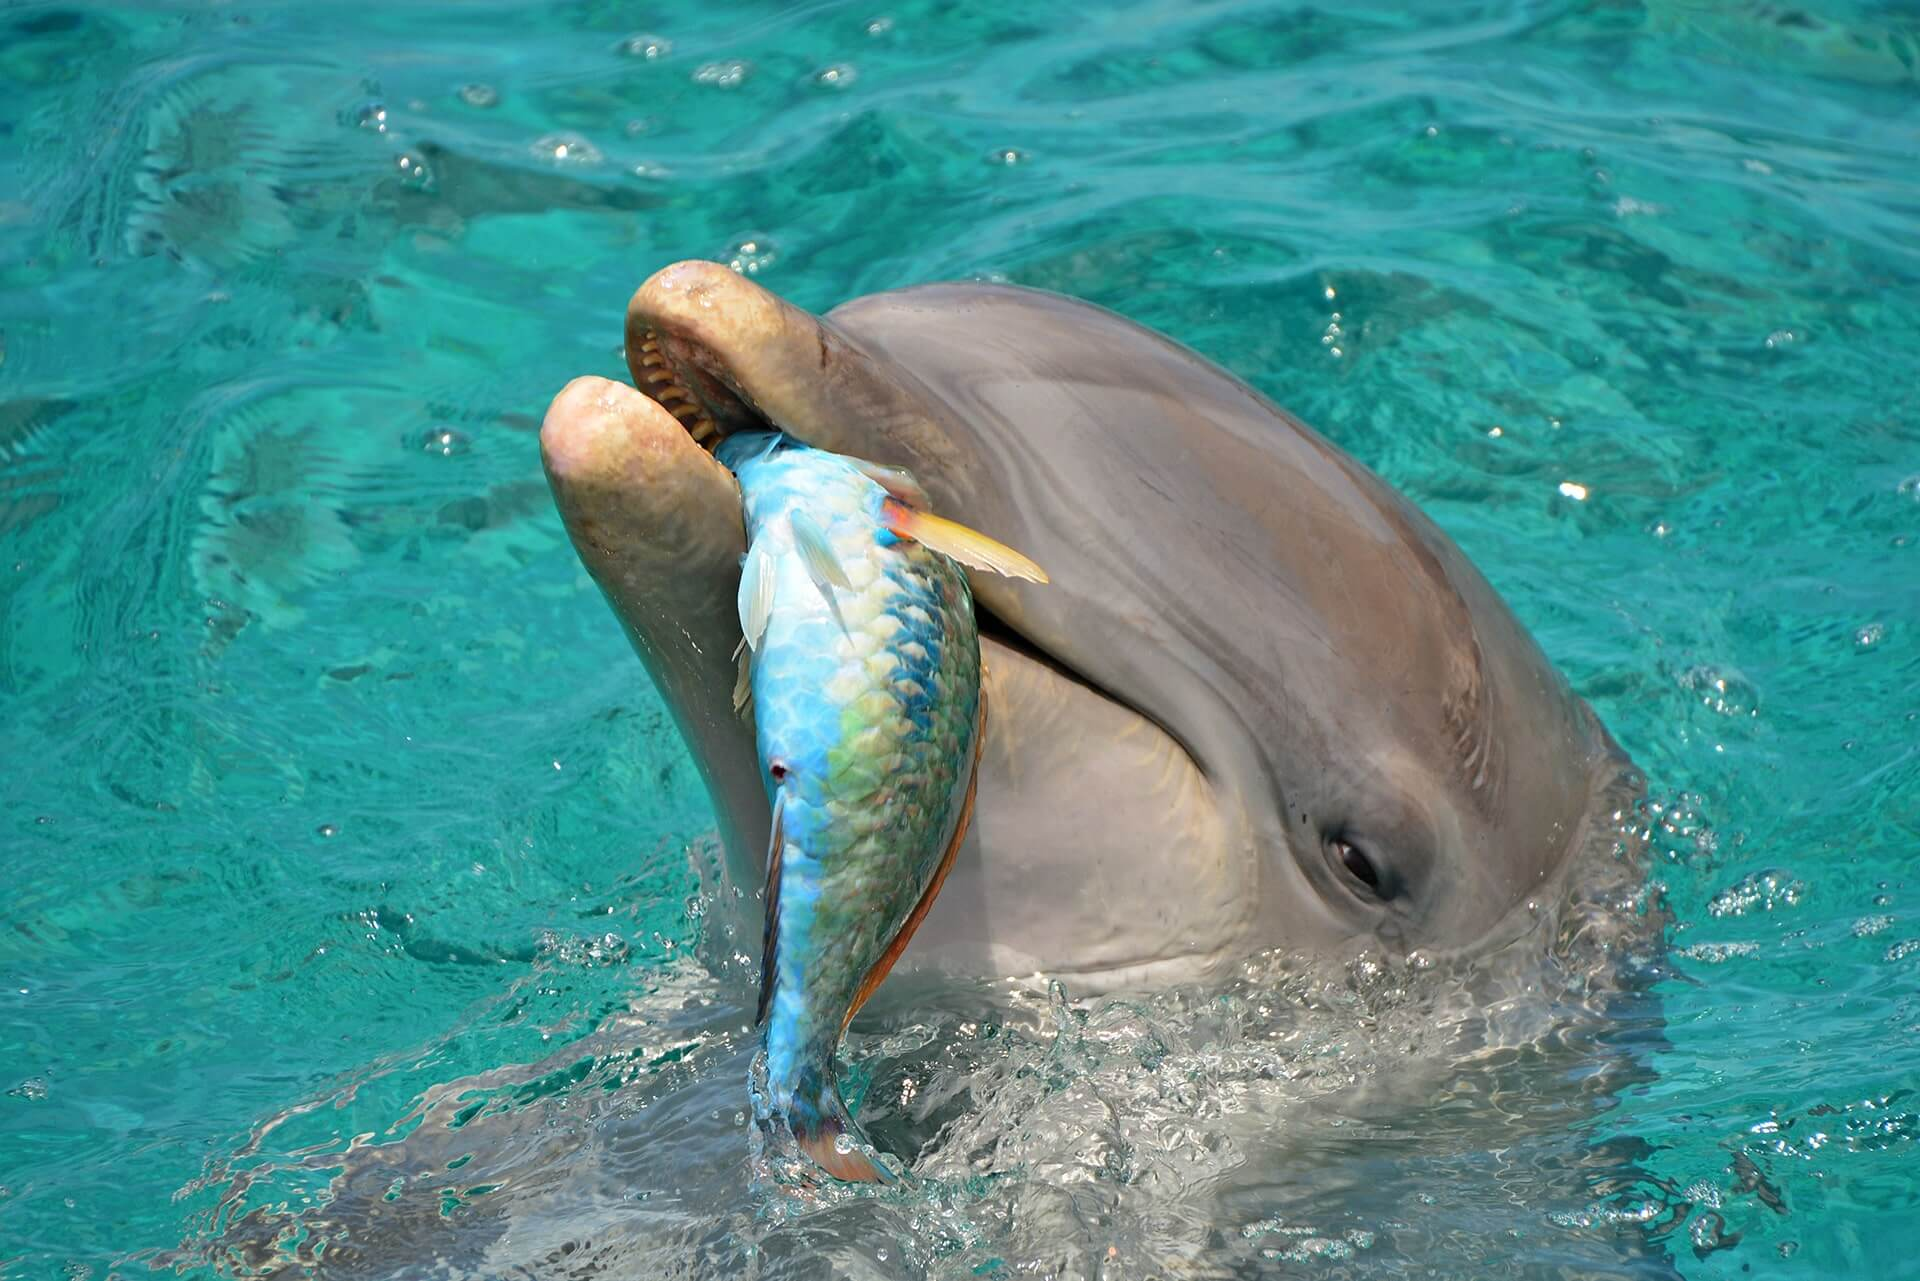 A dolphin eating a fish at the dolphin academy in Curaçao.